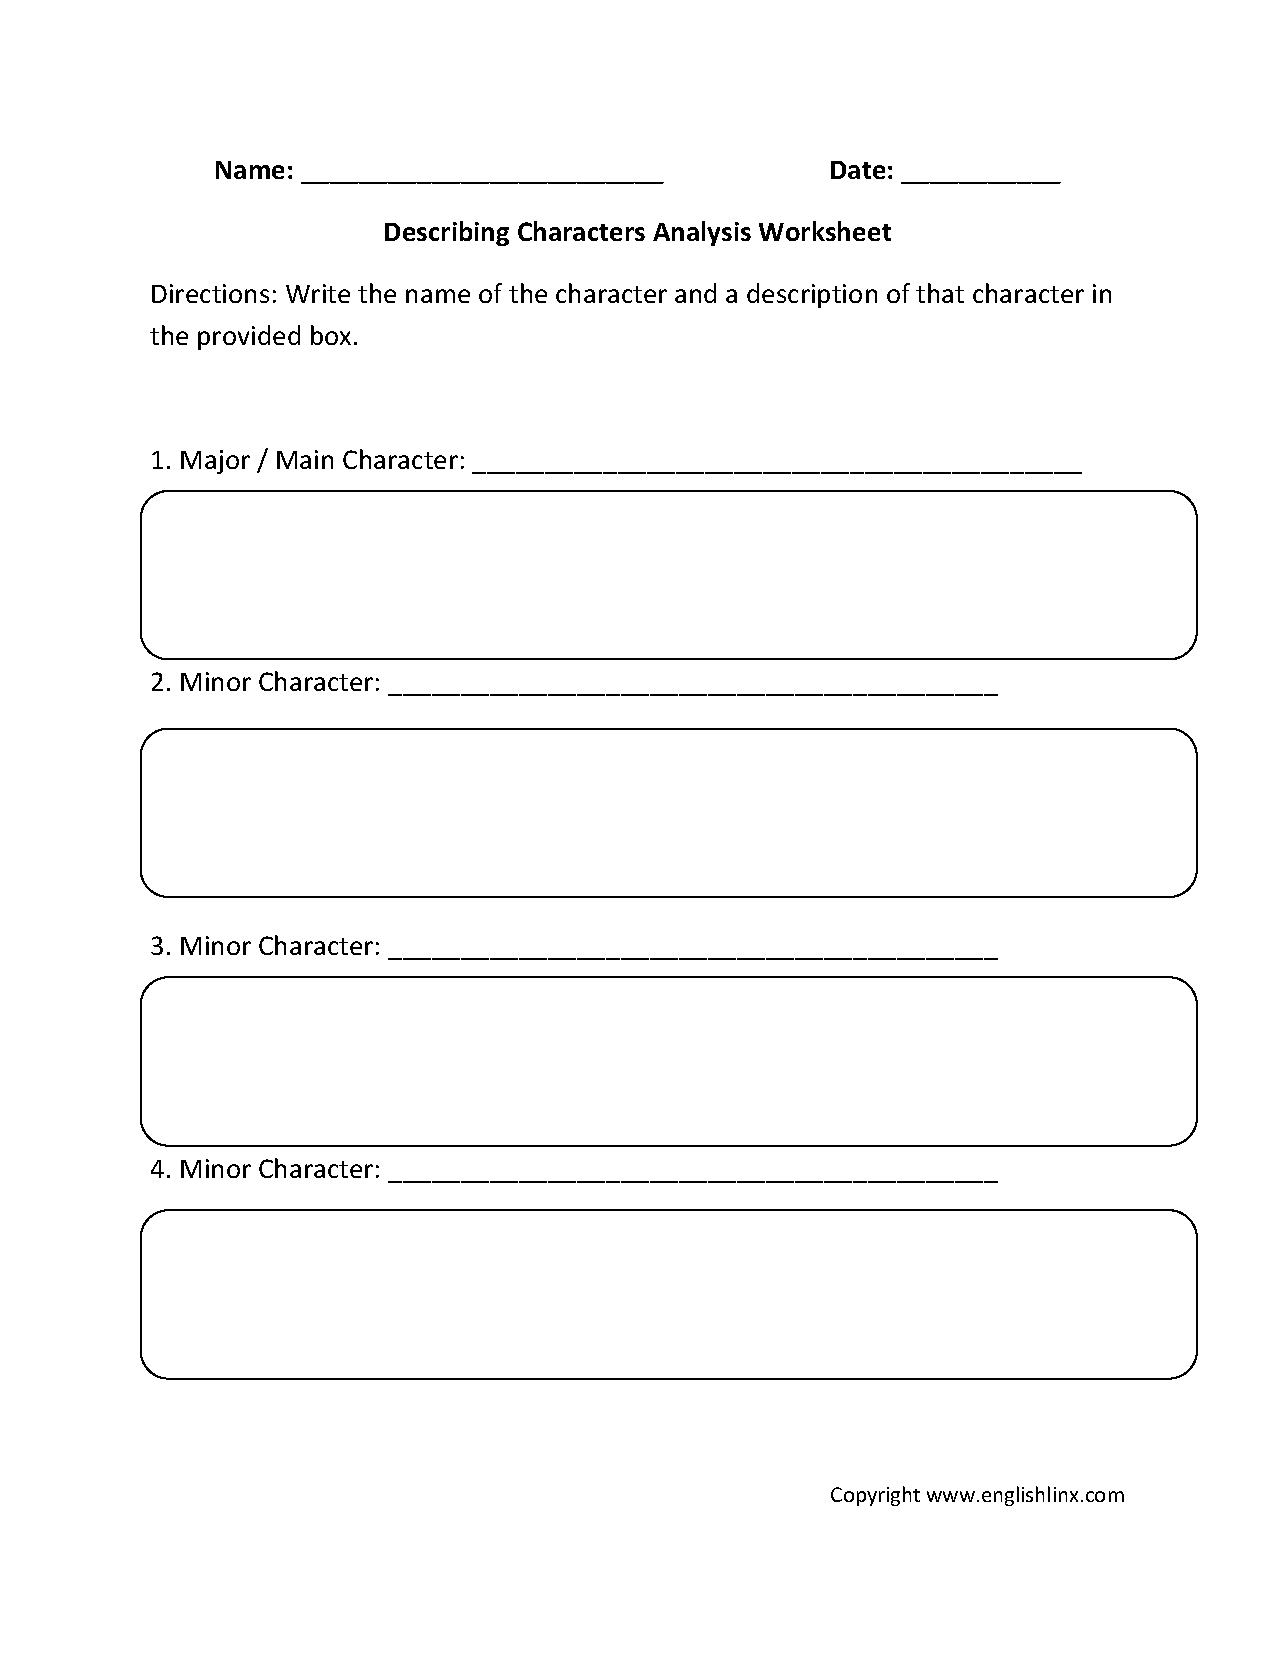 Printables Character Analysis Worksheet character analysis worksheets describing worksheets